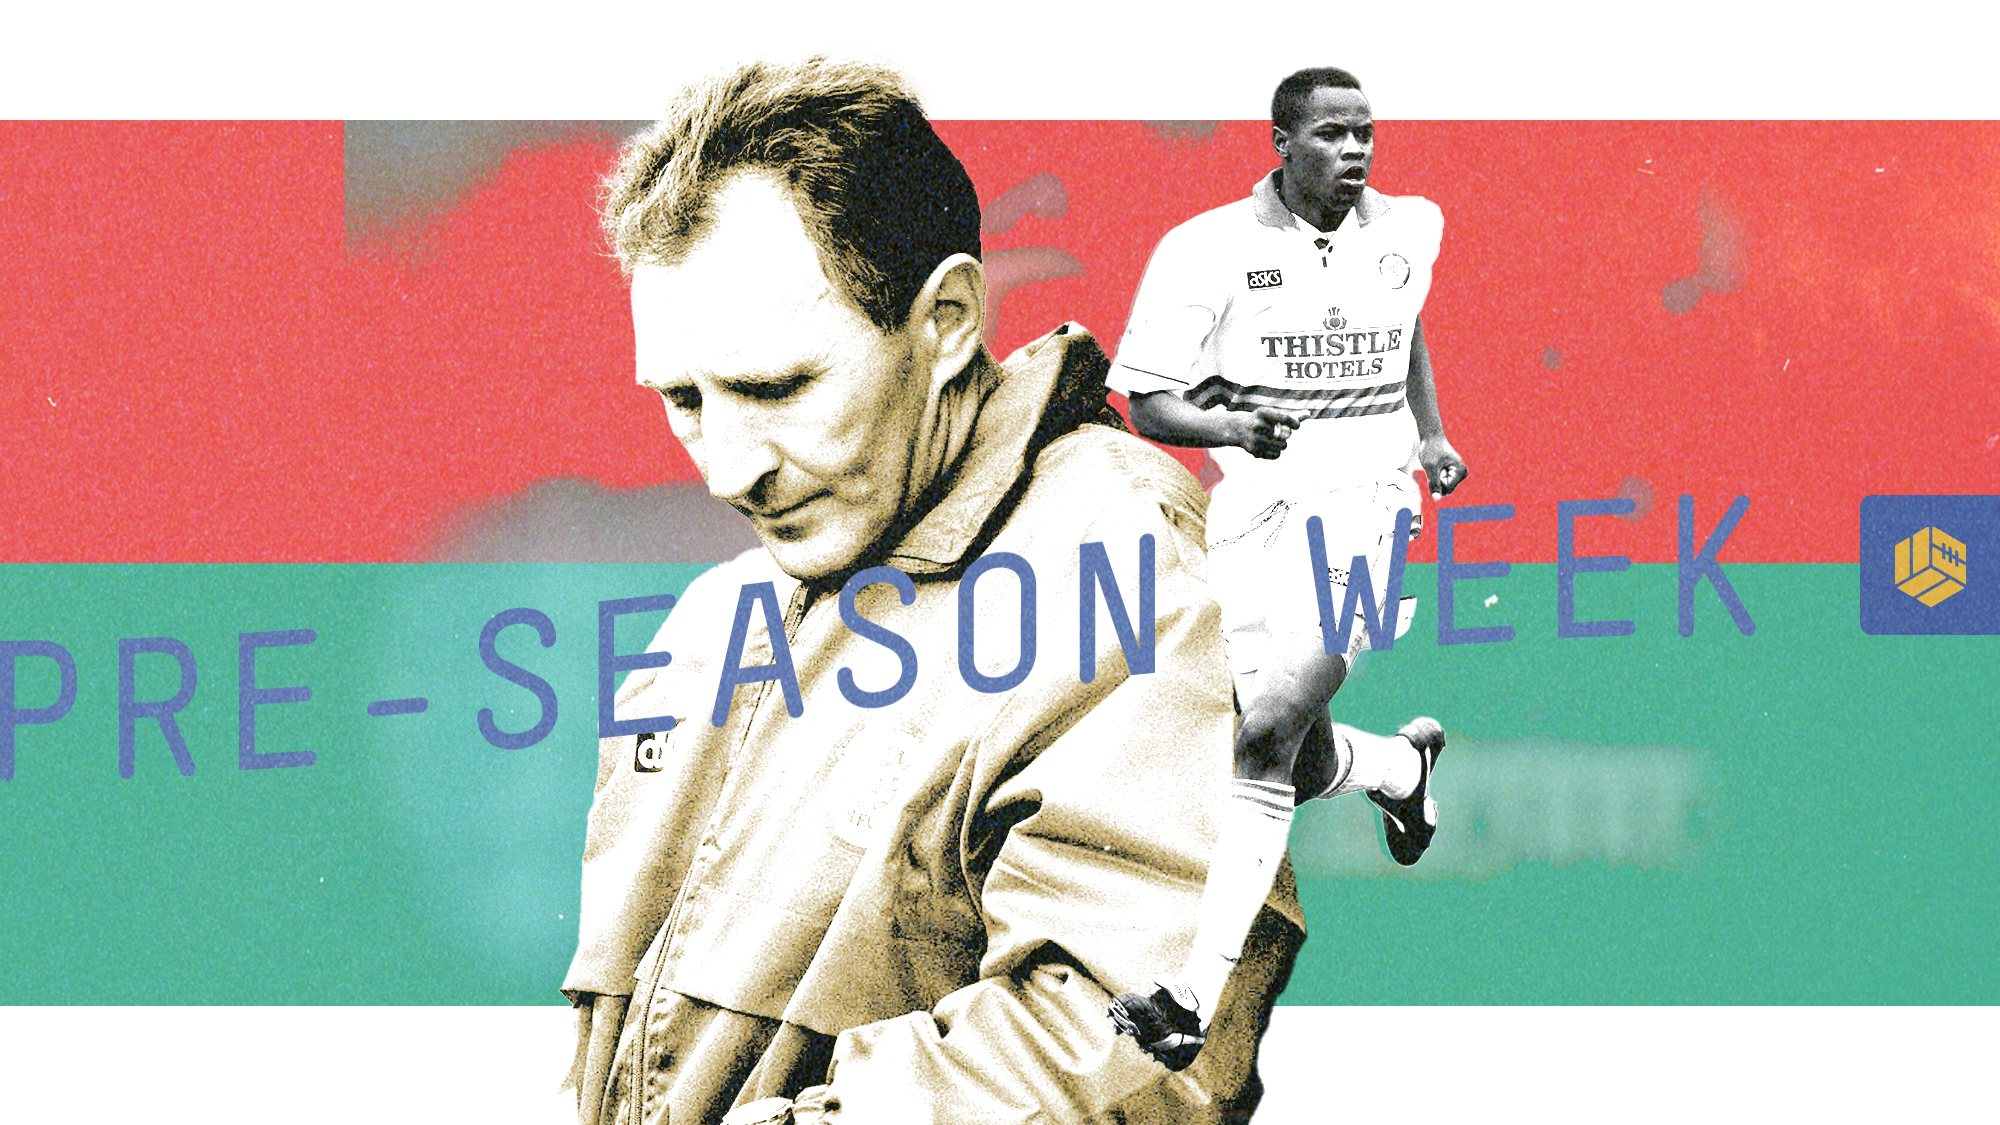 Howard Wilkinson and Phil Masinga on a red and green background